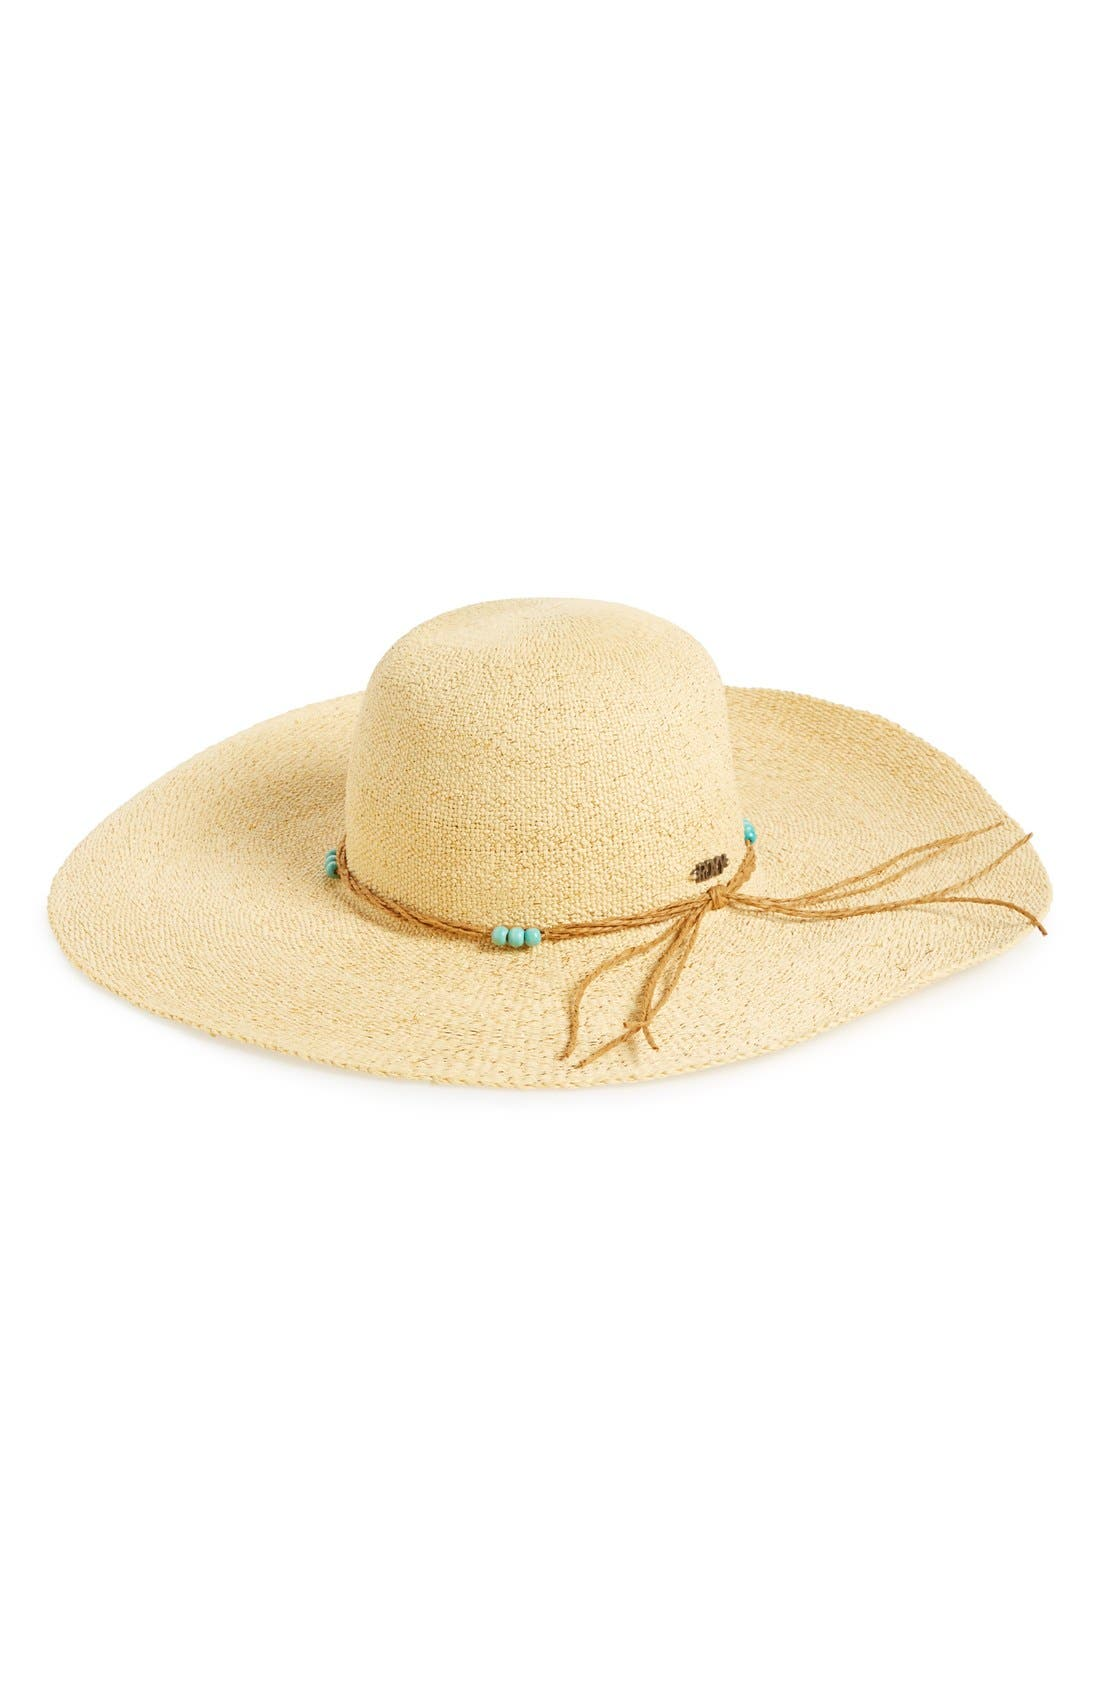 Alternate Image 1 Selected - Roxy 'By the Sea' Floppy Hat